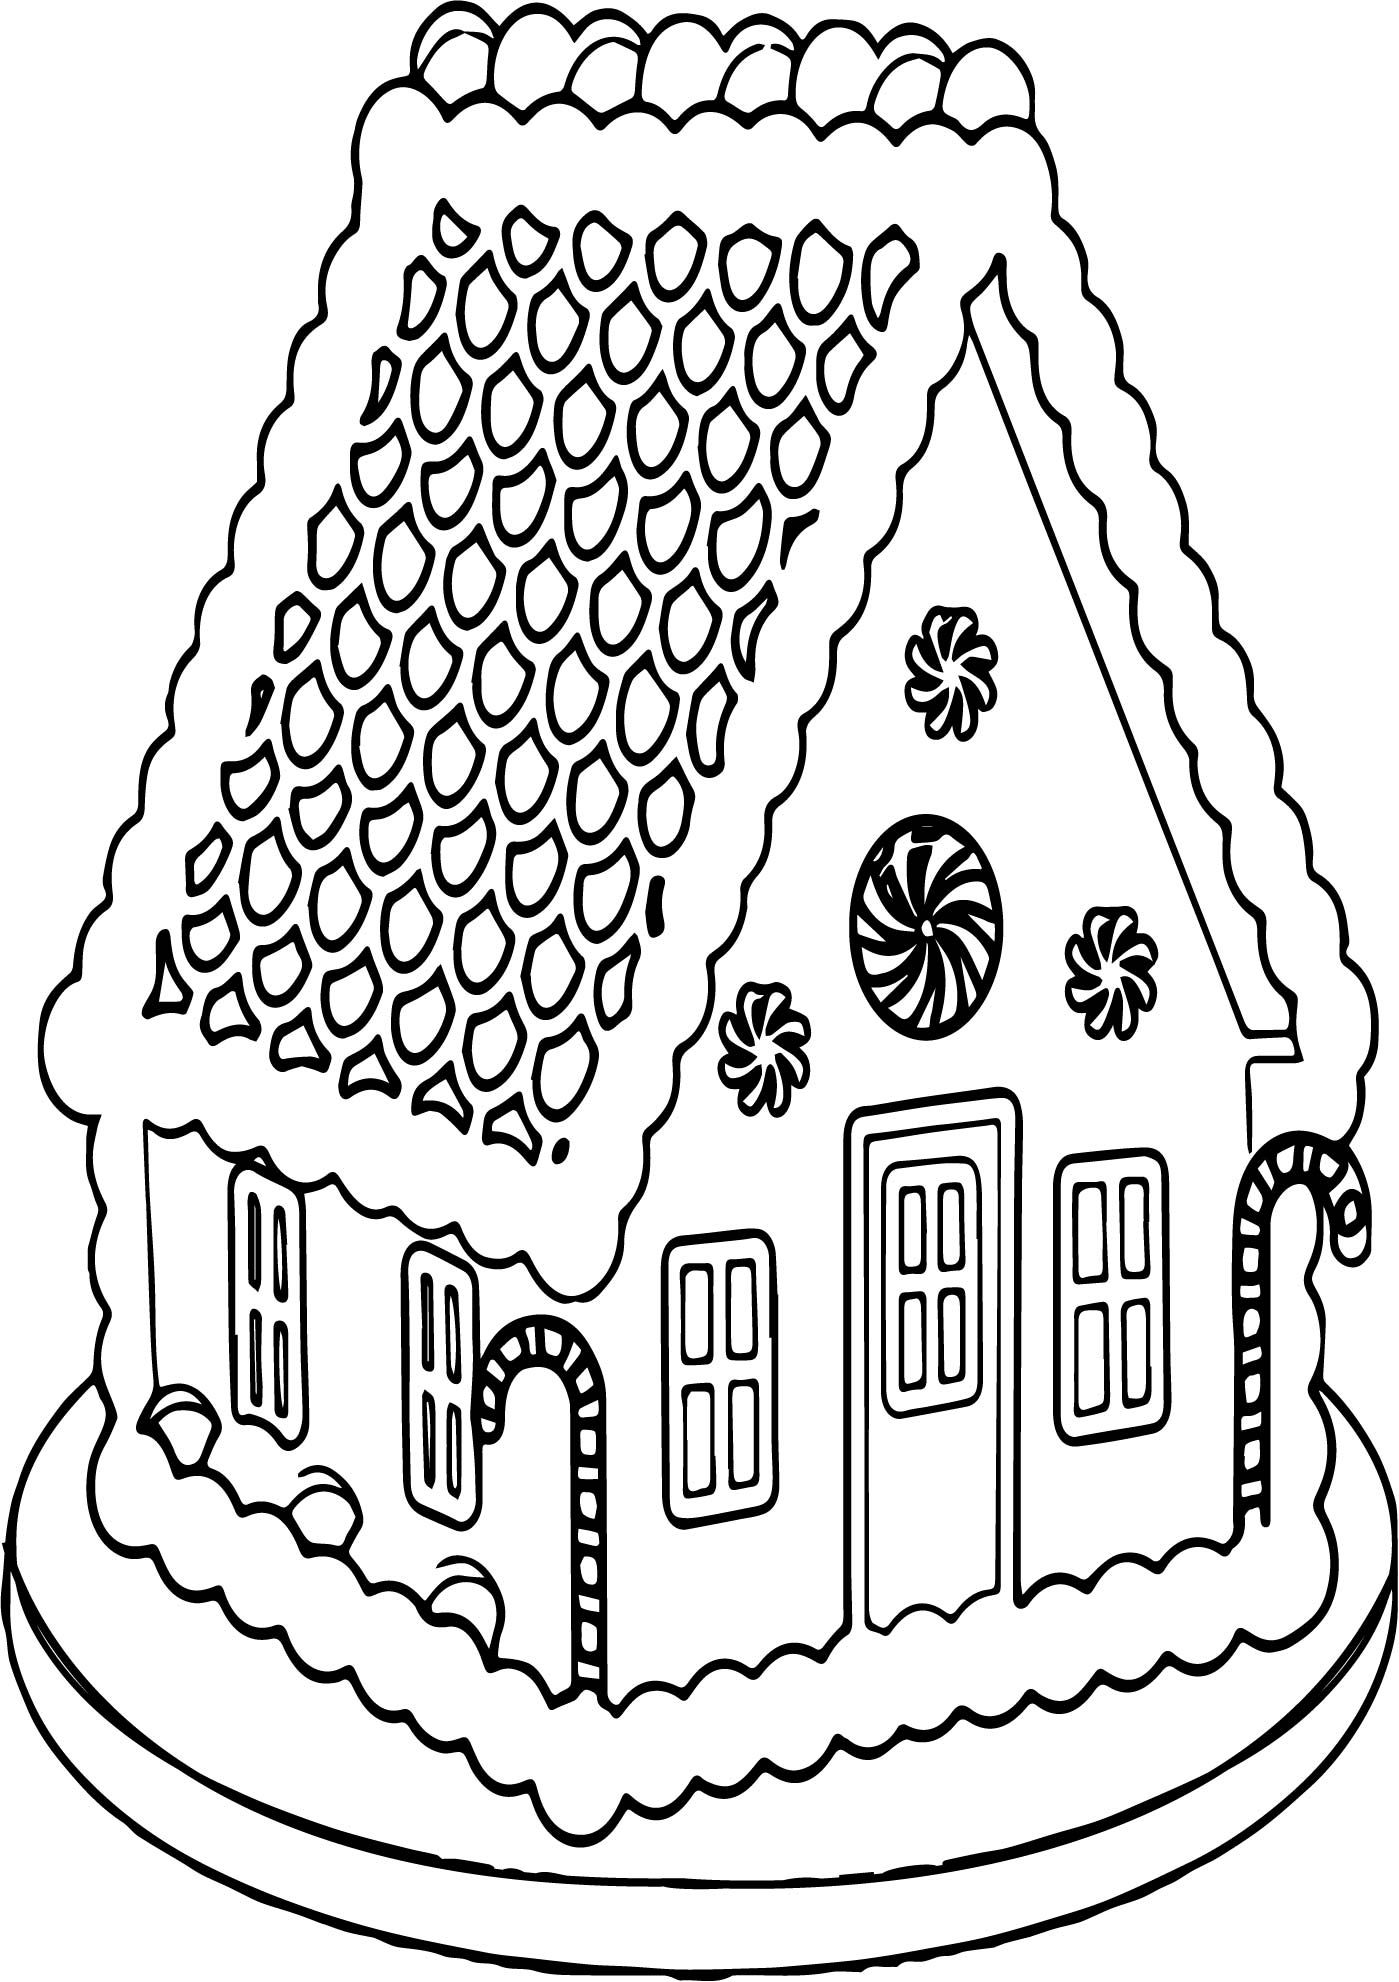 Big Gingerbread House Coloring Page | Wecoloringpage.com